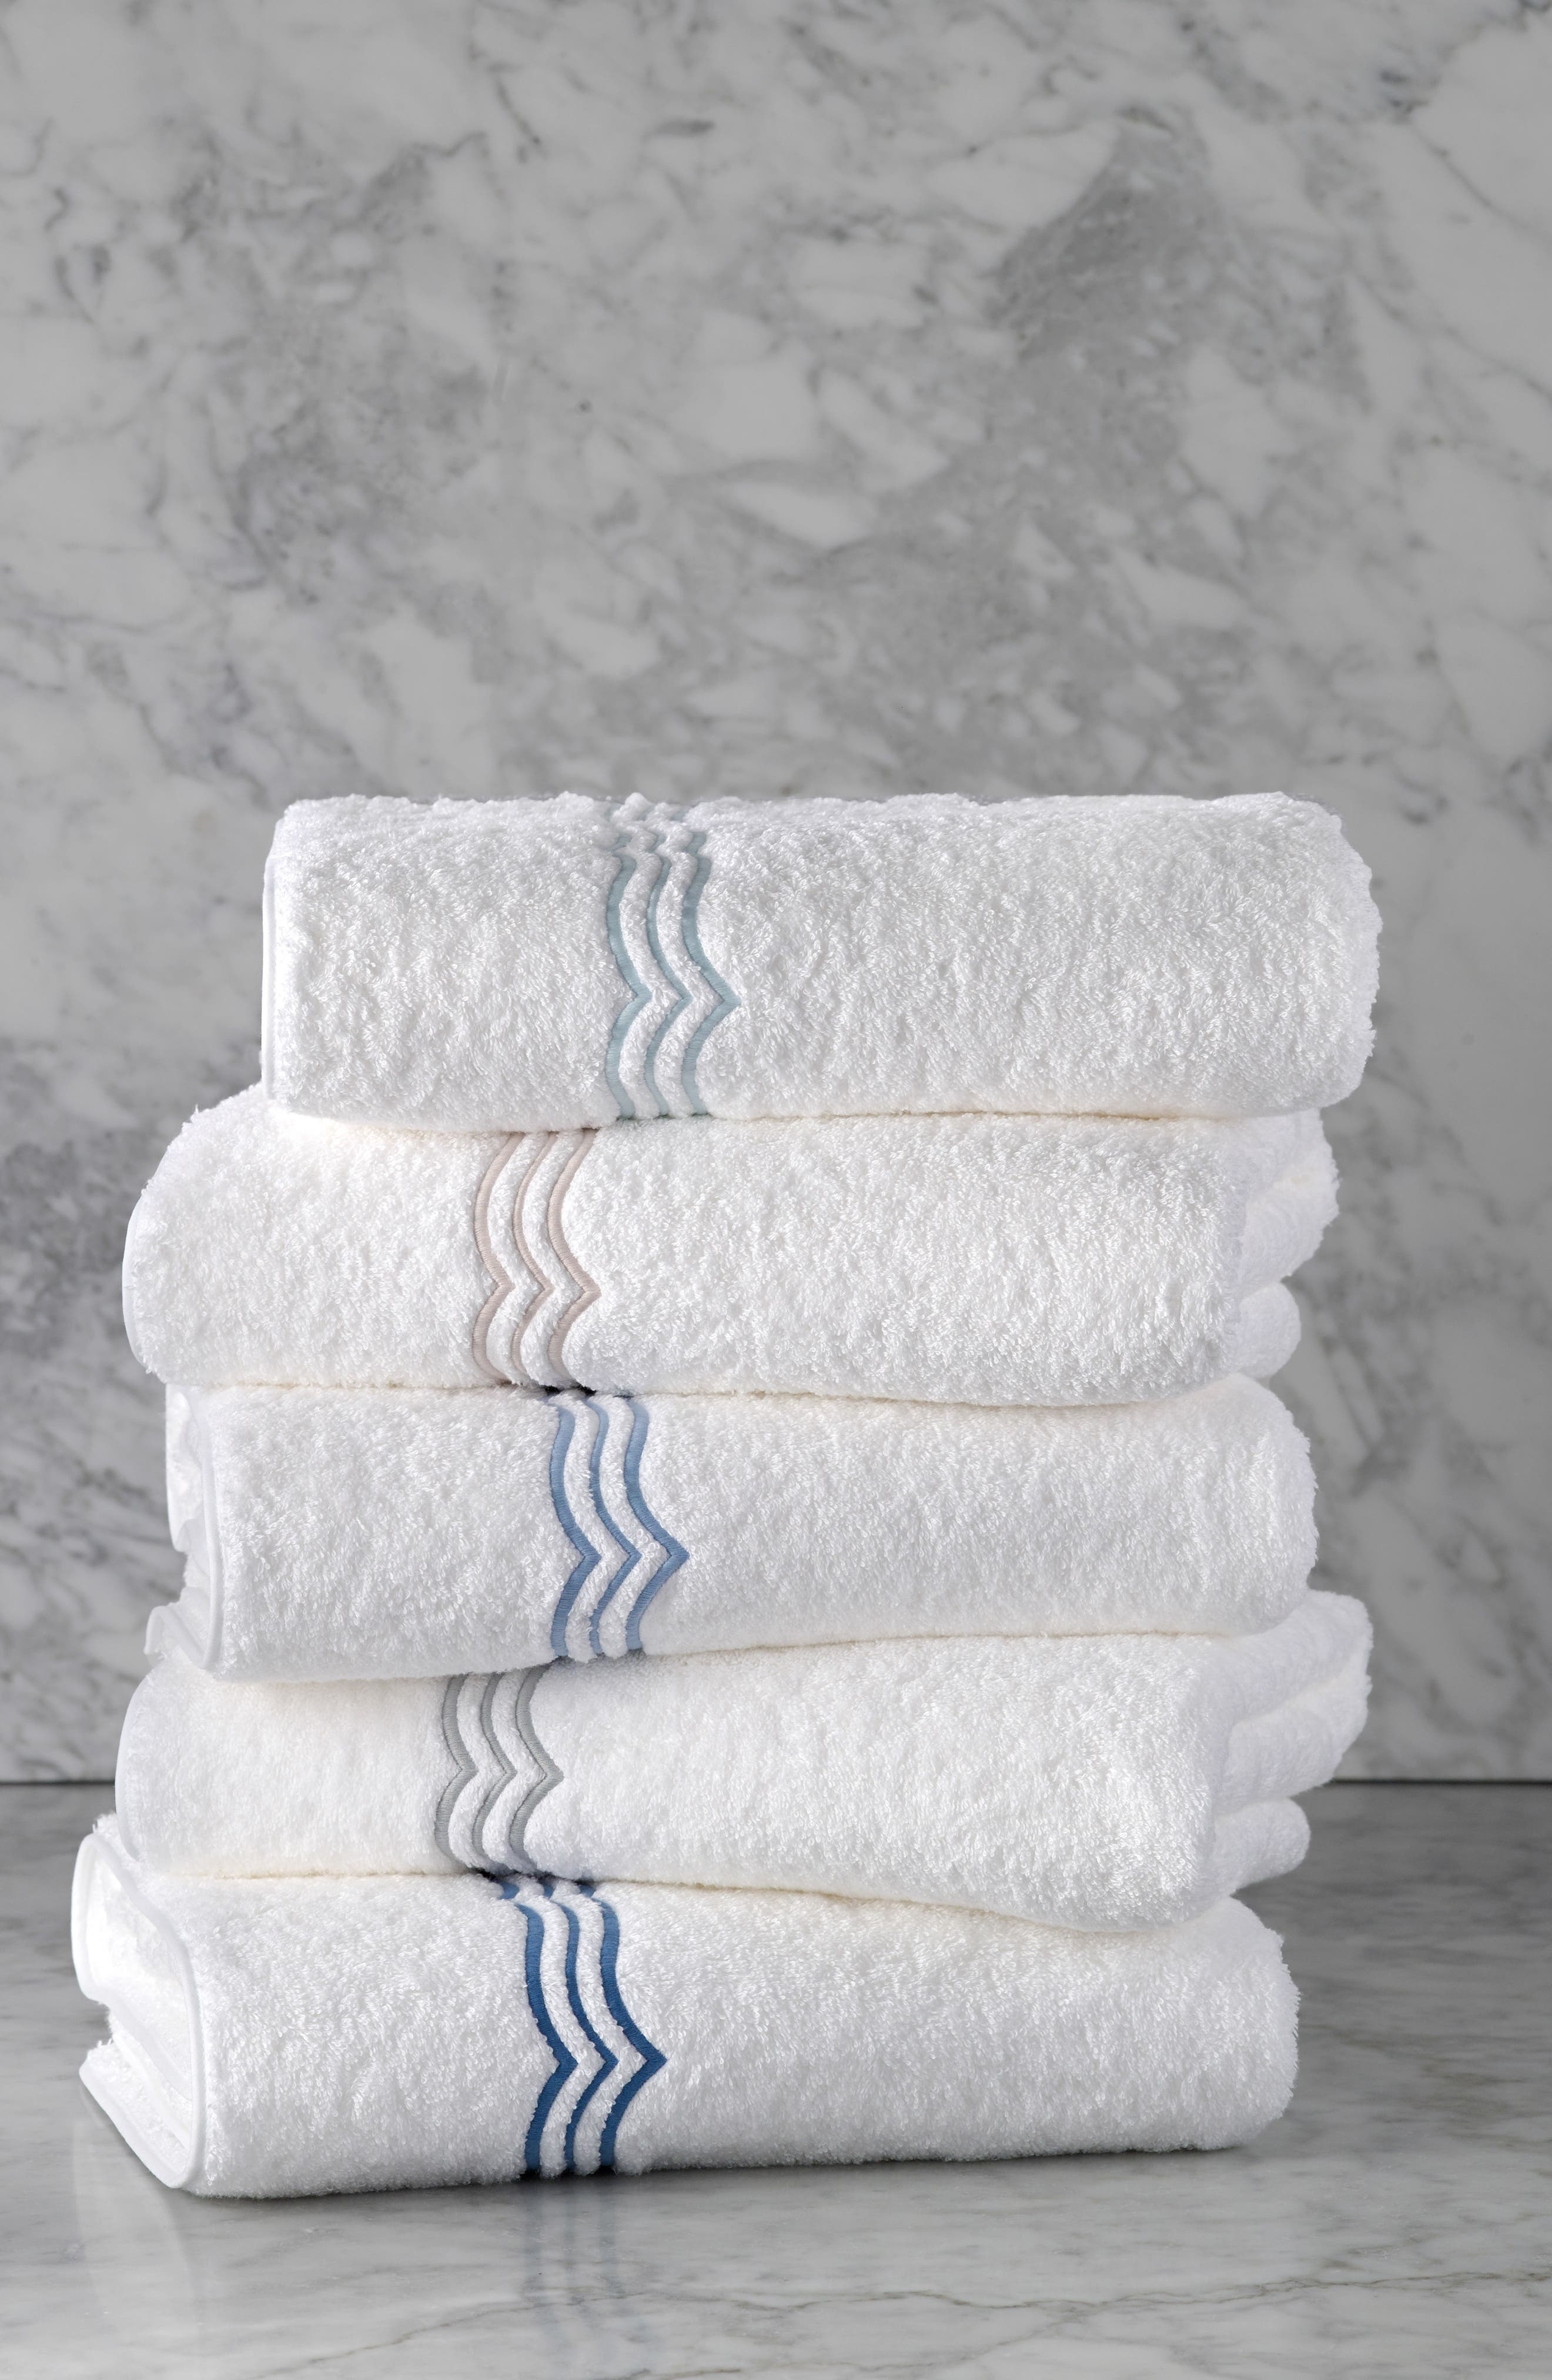 MATOUK,                             Paola Bath Towel,                             Alternate thumbnail 5, color,                             040